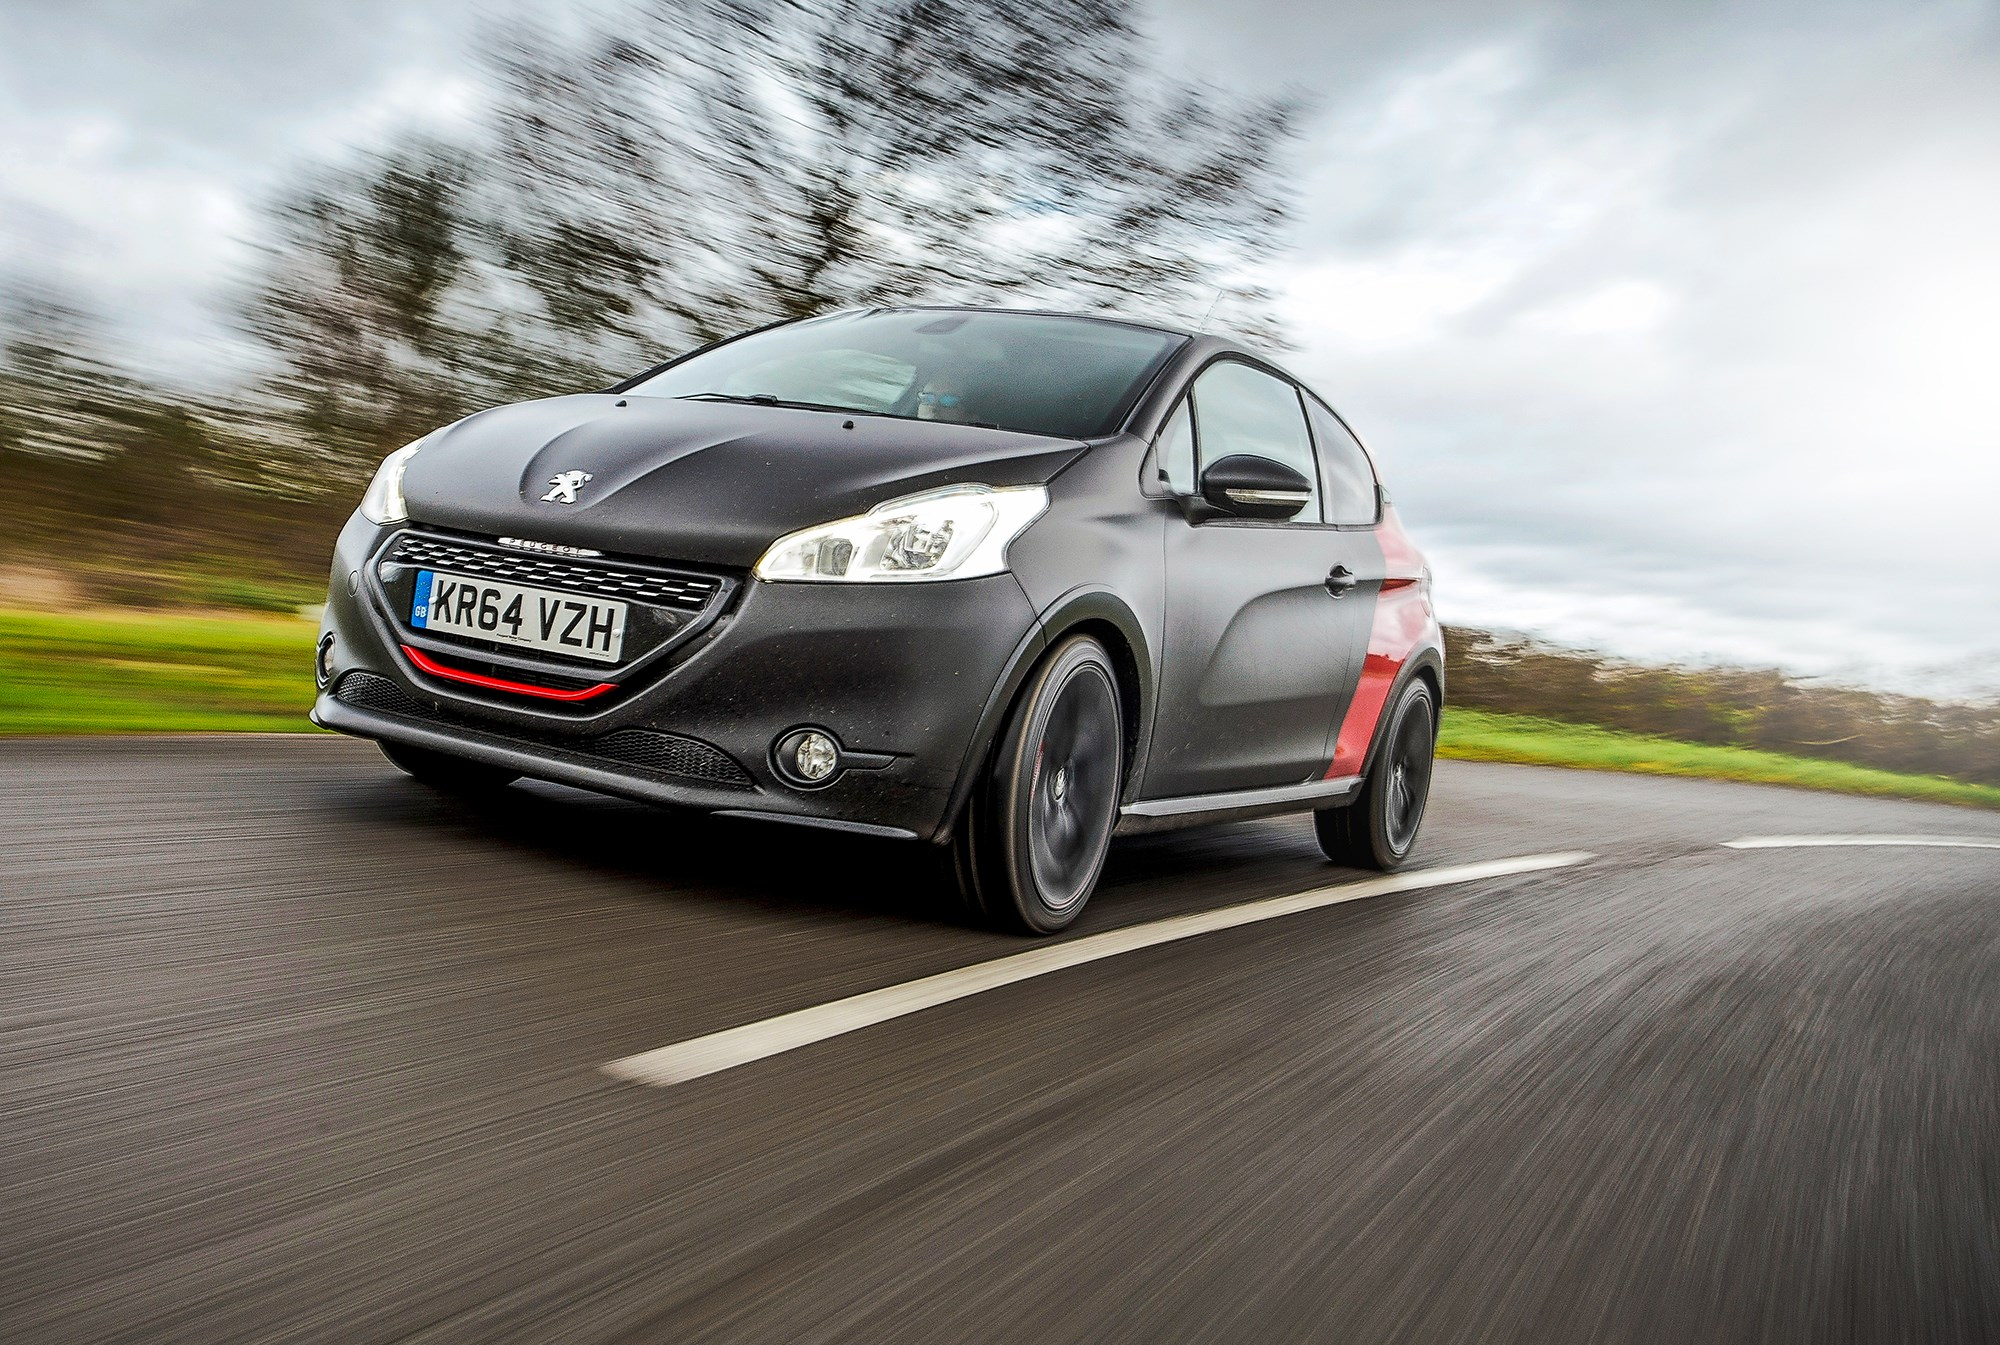 BMW Of Murray >> Peugeot 208 GTi 30th (2015) review | CAR Magazine